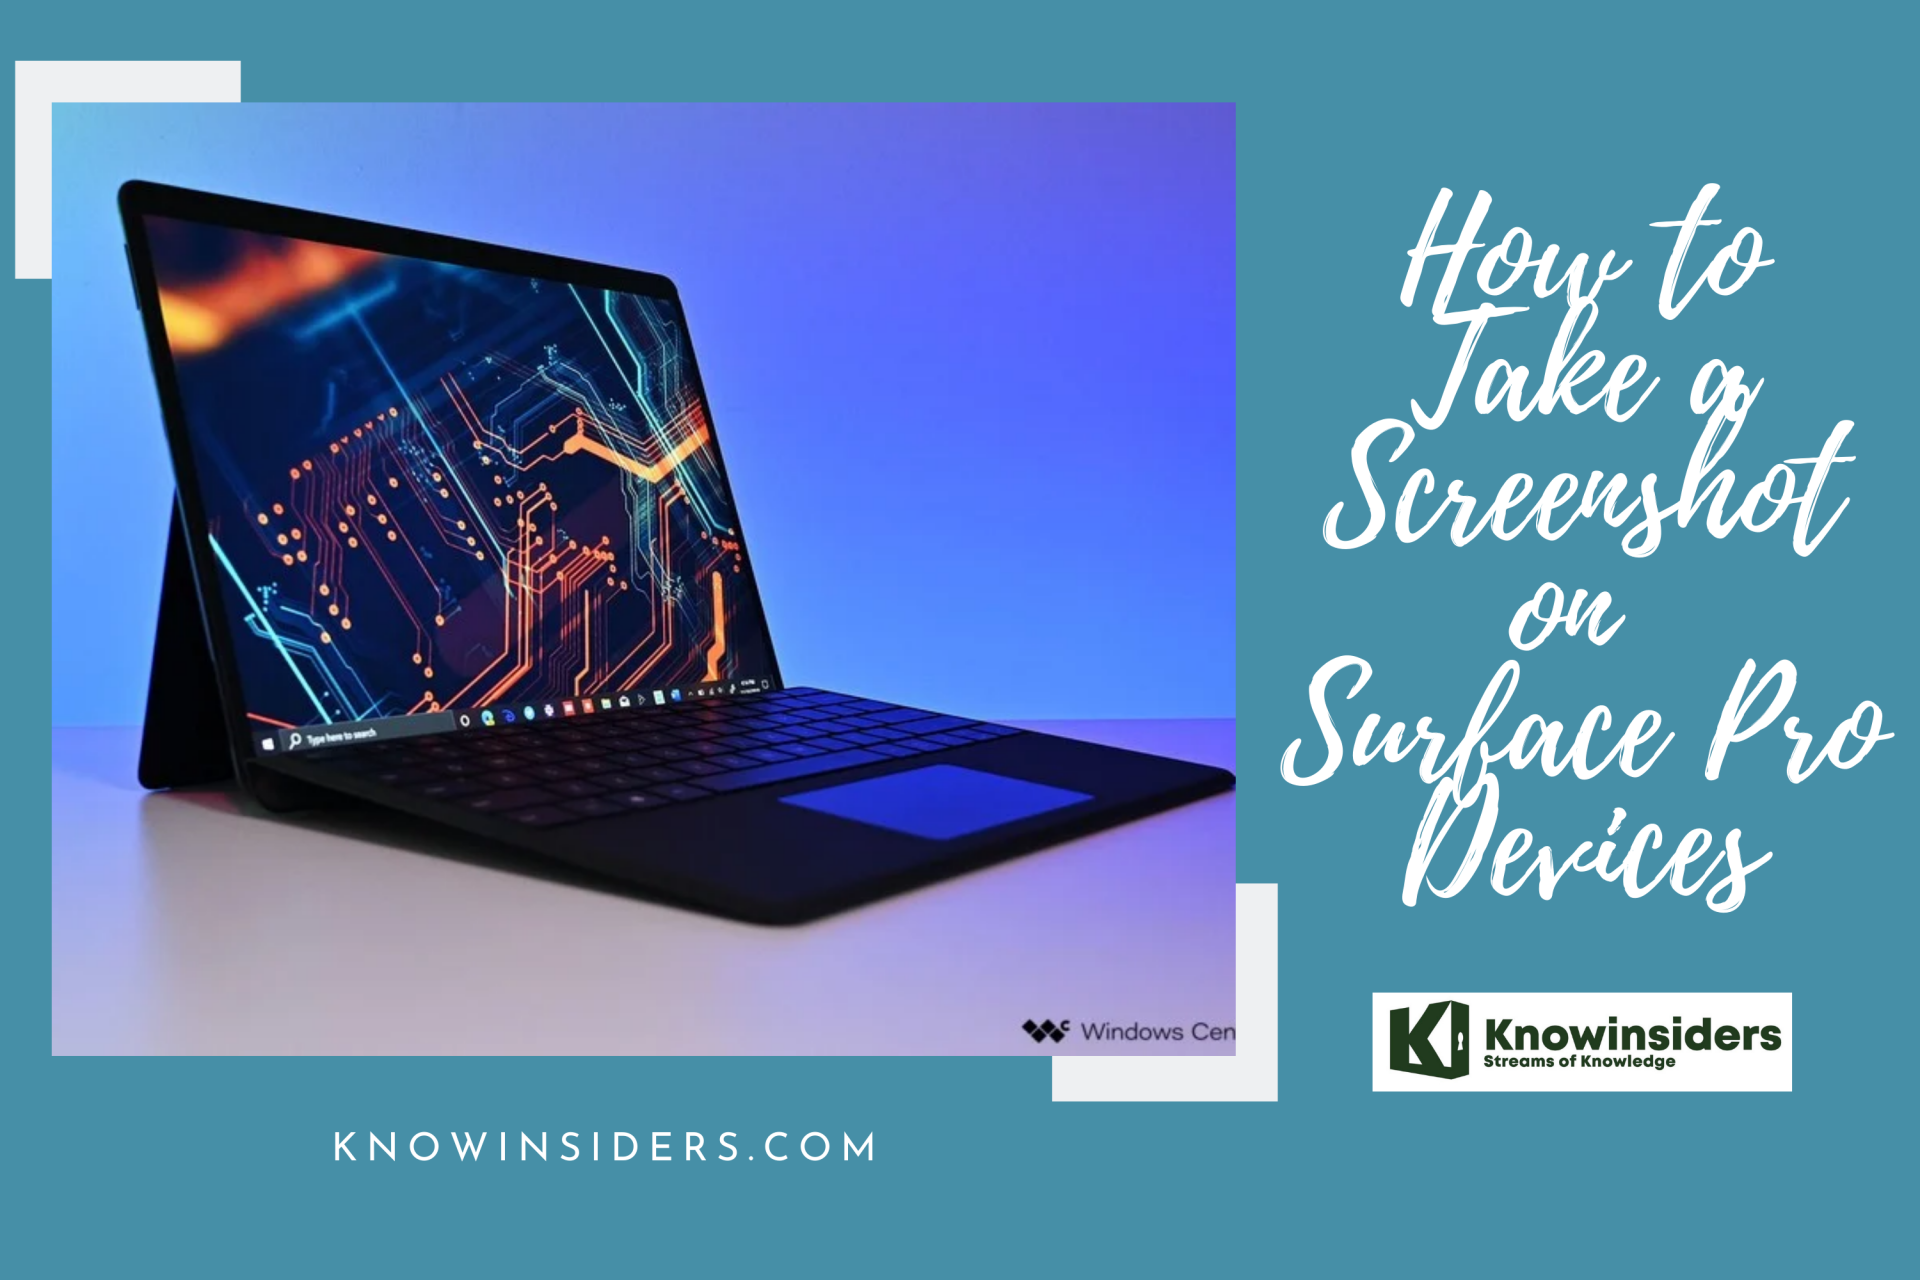 How to Take Screenshot on Surface Pro Devices: Top 7 Simple Ways